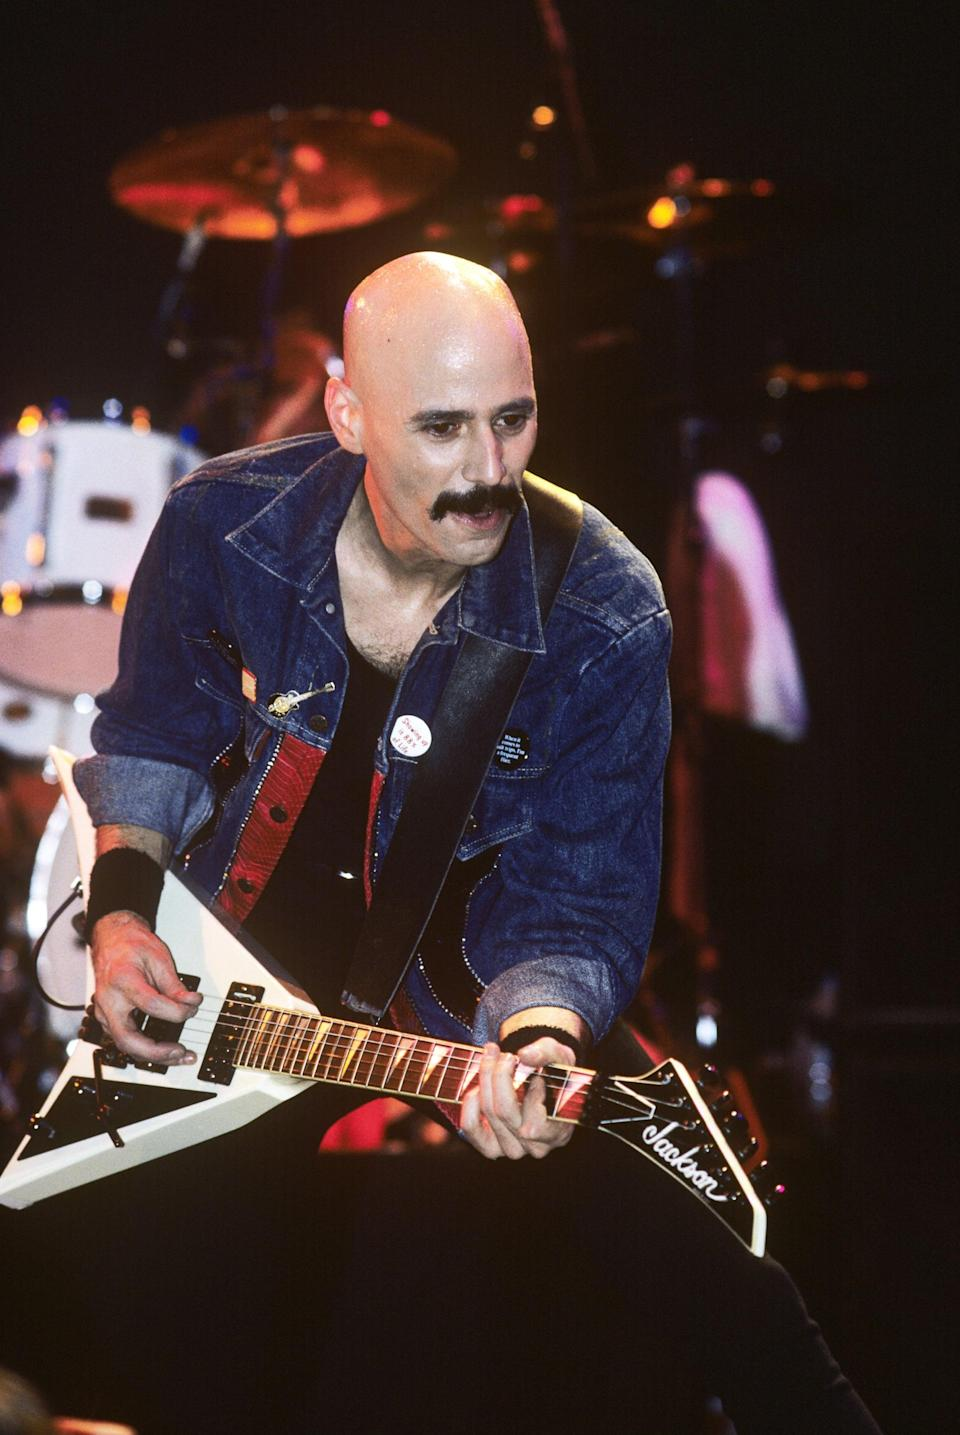 """<p>The guitarist, who played with Lou Reed, Kiss, and Meat Loaf, <span>died at age 70</span> in May. His brother, Bruce, <a href=""""https://www.facebook.com/officialbrucekulick/photos/a.171648970871/10157364576265872/?type=3&theater"""" class=""""link rapid-noclick-resp"""" rel=""""nofollow noopener"""" target=""""_blank"""" data-ylk=""""slk:confirmed the news in an emotional Facebook post"""">confirmed the news in an emotional Facebook post</a>. """"I am heartbroken to have to share the news of the passing of my brother Bob Kulick,"""" Bruce wrote. """"His love of music, and his talent as a musician and producer should always be celebrated. I know he is at peace now, with my parents, playing his guitar as loud as possible. Please respect the Kulick Family's privacy during this very sad time.""""</p>"""